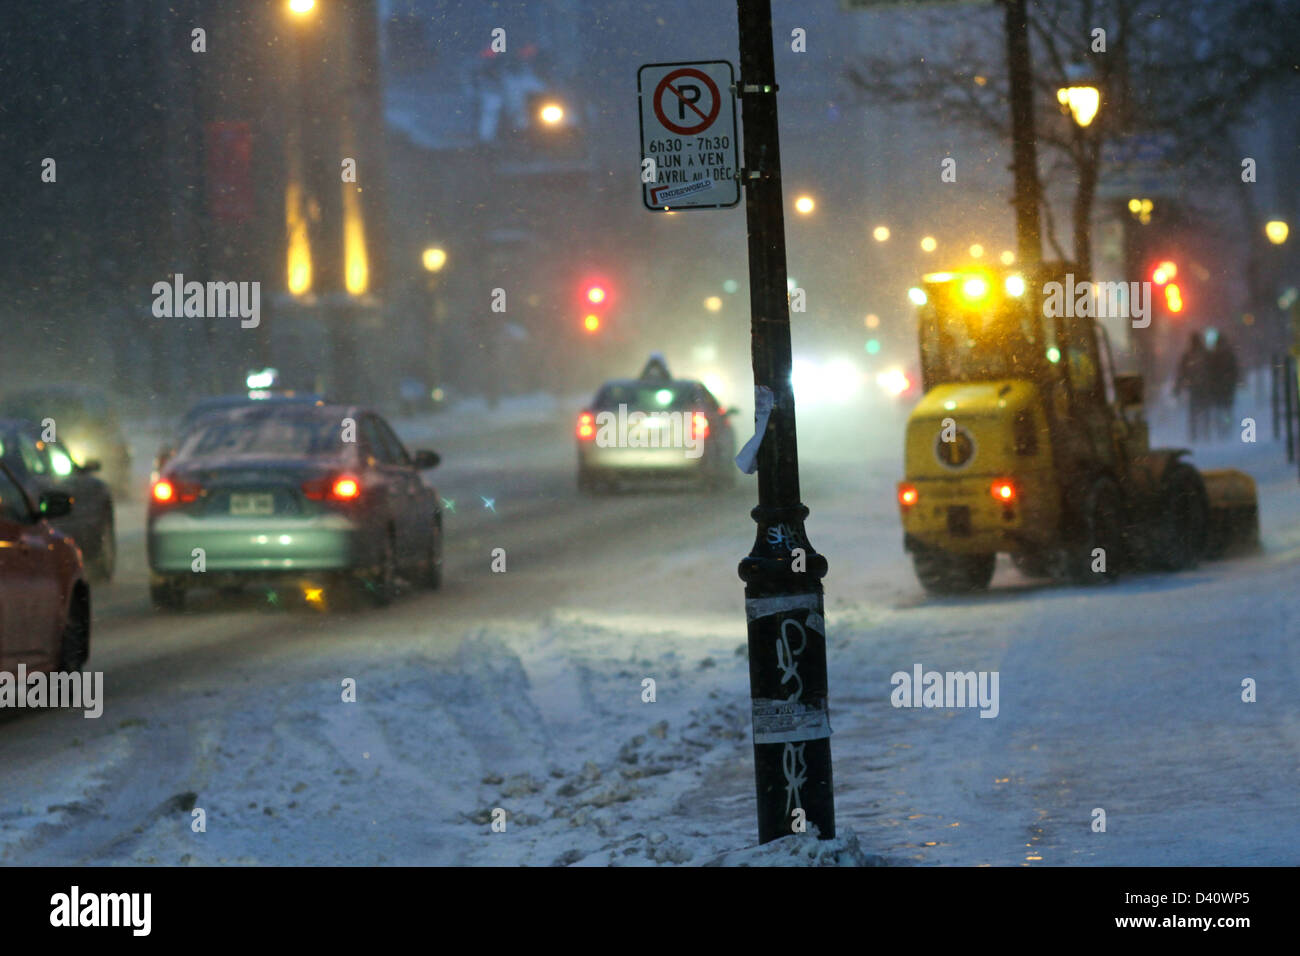 Sidewalk snow removal during rush hour in Montreal, Quebec during a heavy snowfall. - Stock Image